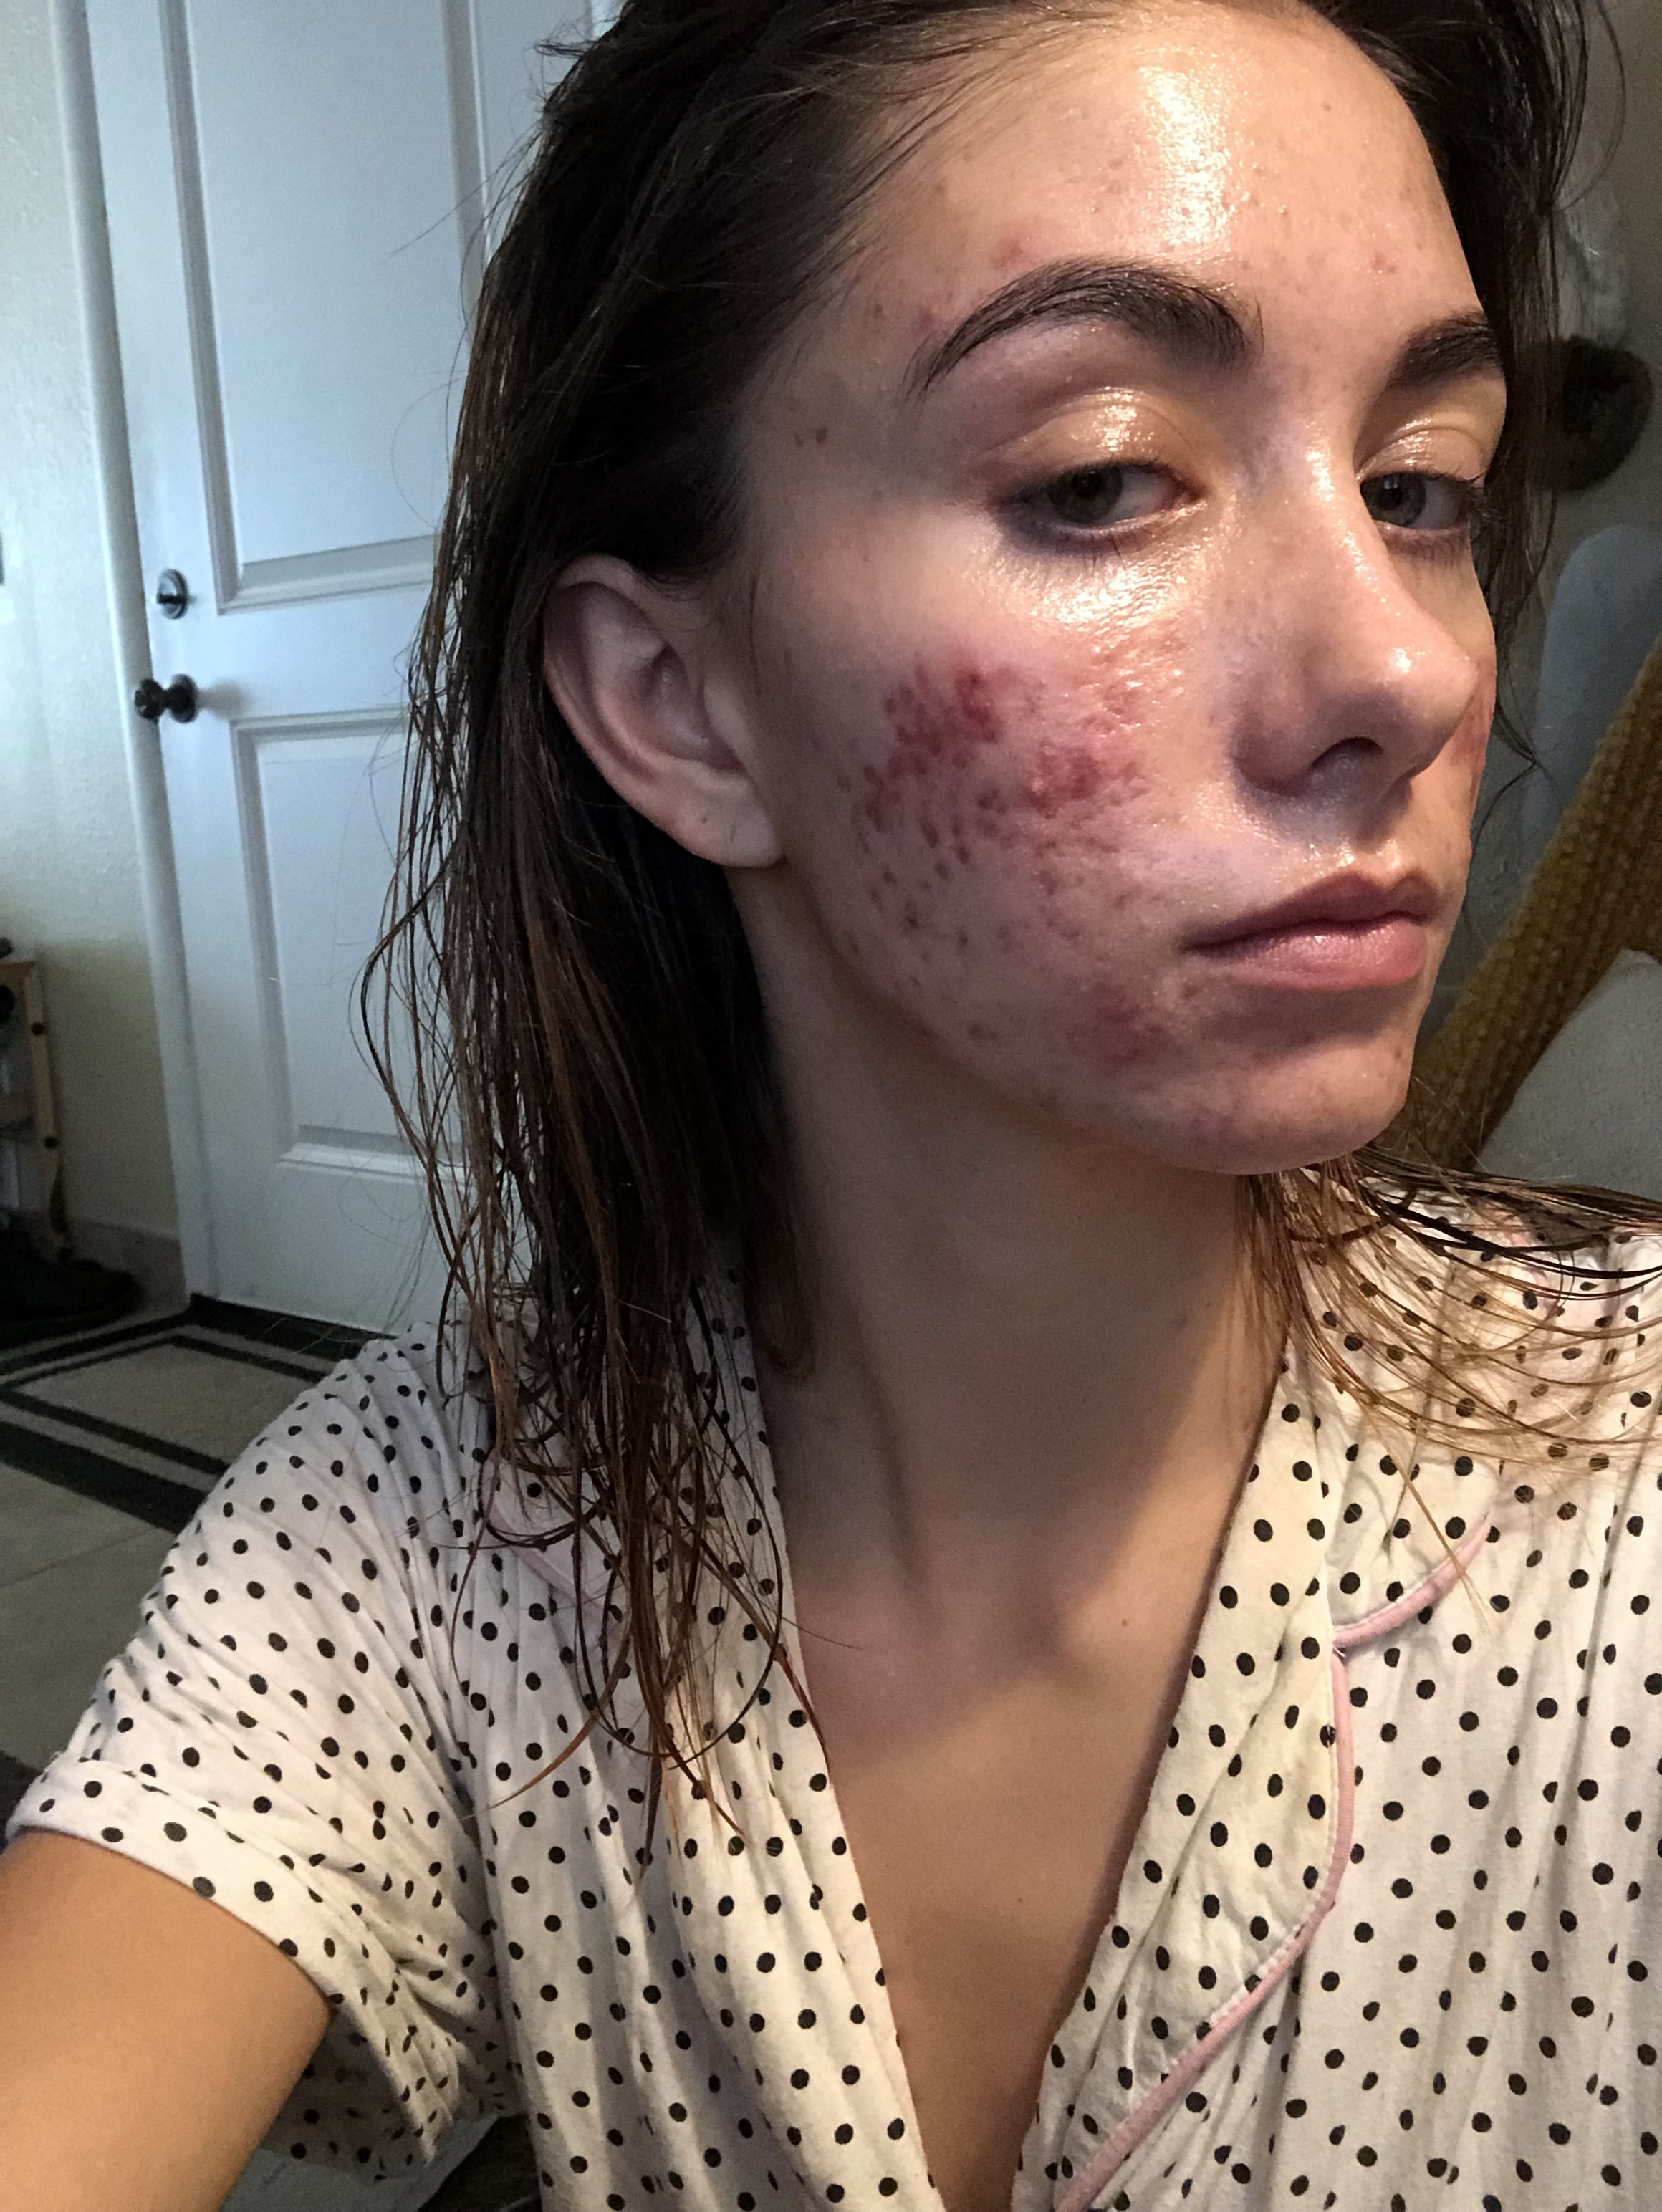 My skin at its worst. I had terrible, excruciatingly low confidence. I didn't see my friends for months, and I felt so hideous.